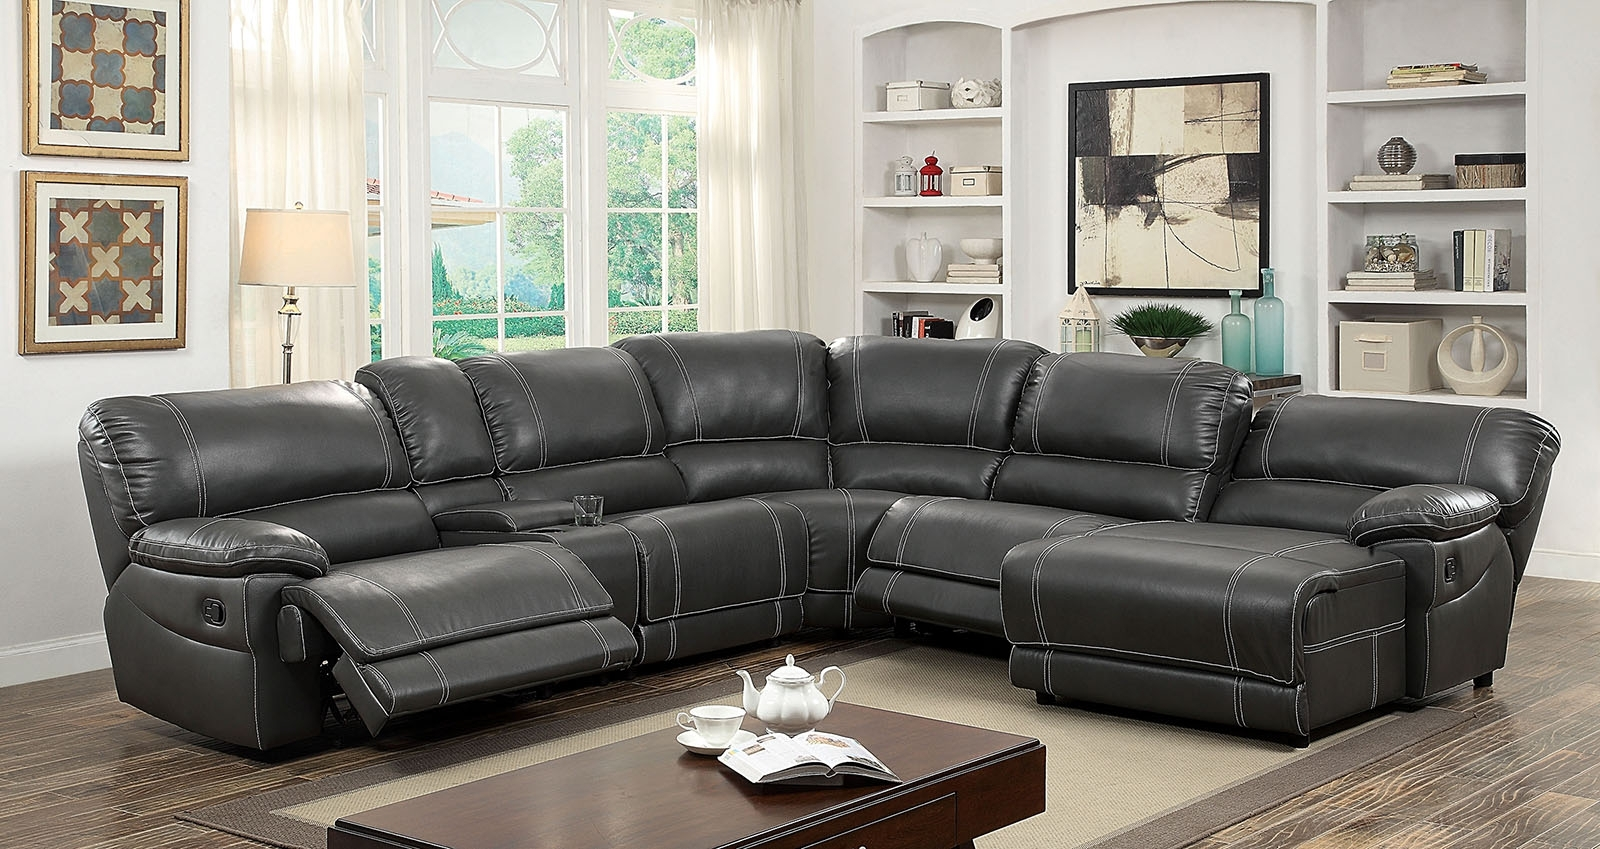 Little Rock Ar Sectional Sofas Inside Most Up To Date Best Modern Reclining Sectional Sofas Ideas – Liltigertoo (View 13 of 15)